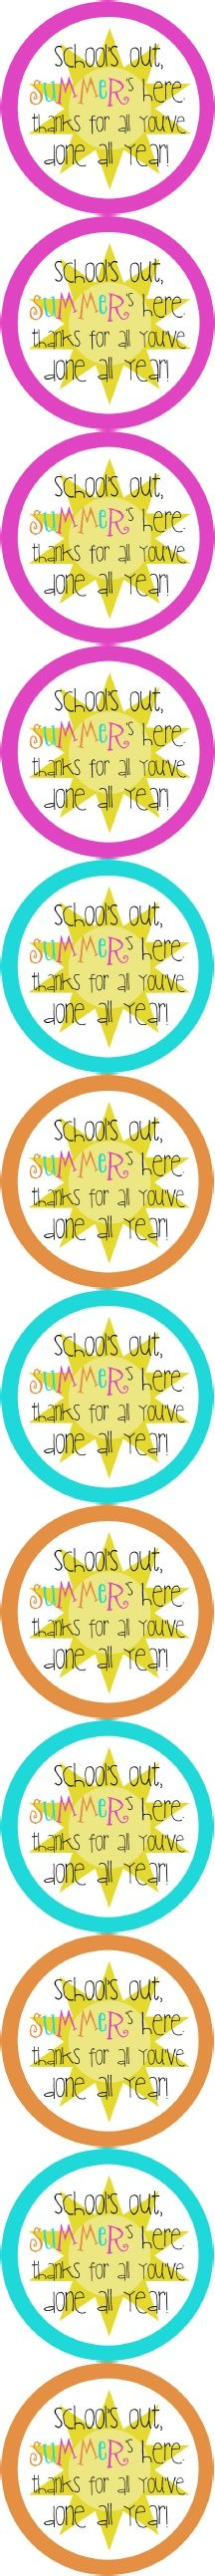 great gift bag tags for end of the year